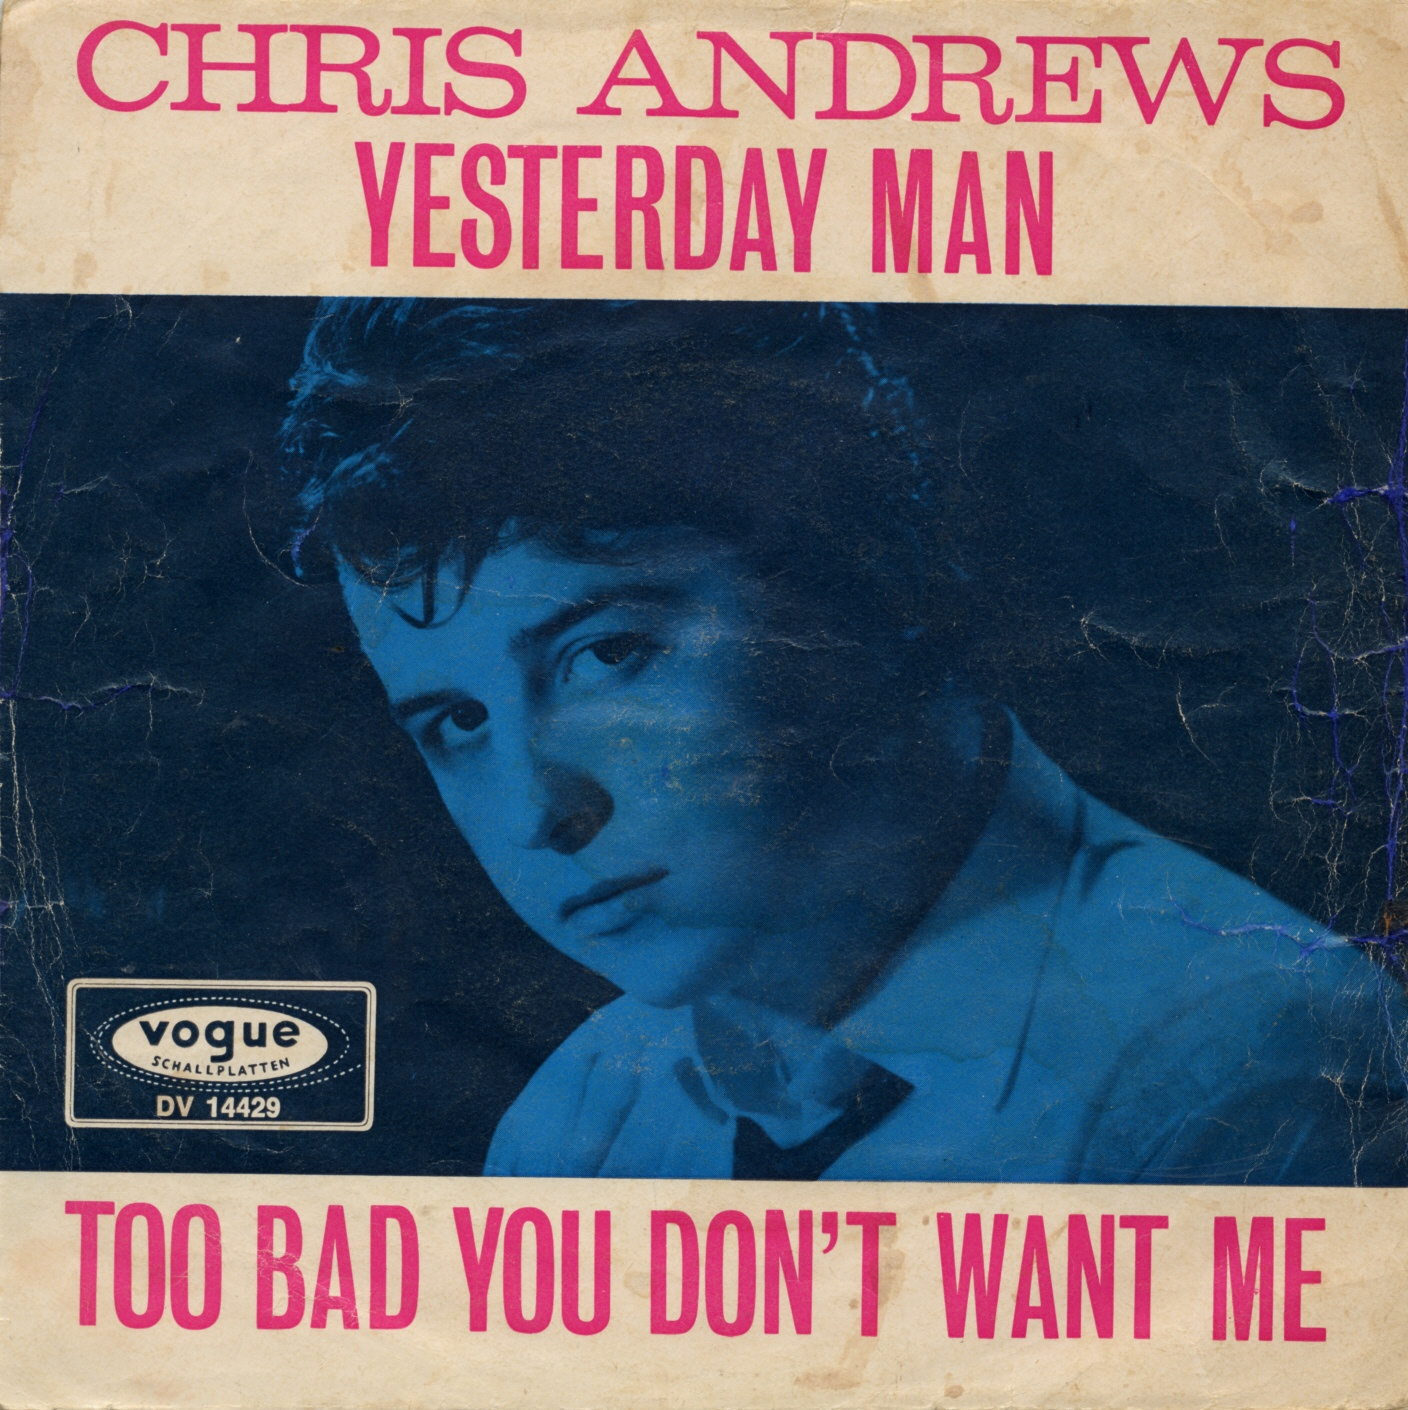 Cover: Yesterday man, Chris Andrews